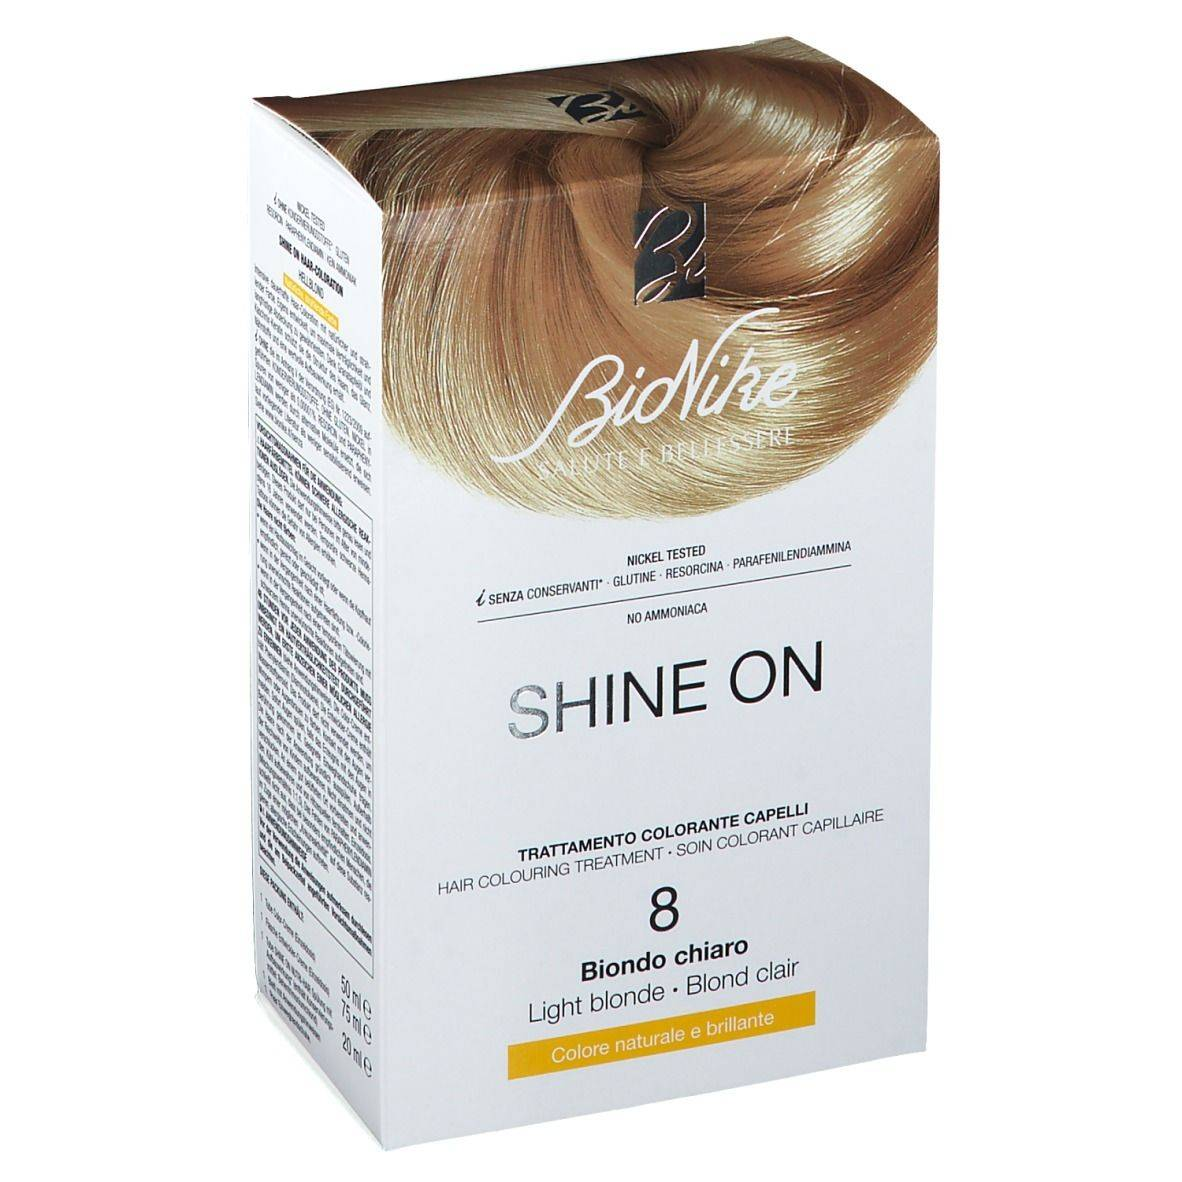 BioNike Shine On Soin colorant capillaire 8 Blond clair pc(s) lotion(s)